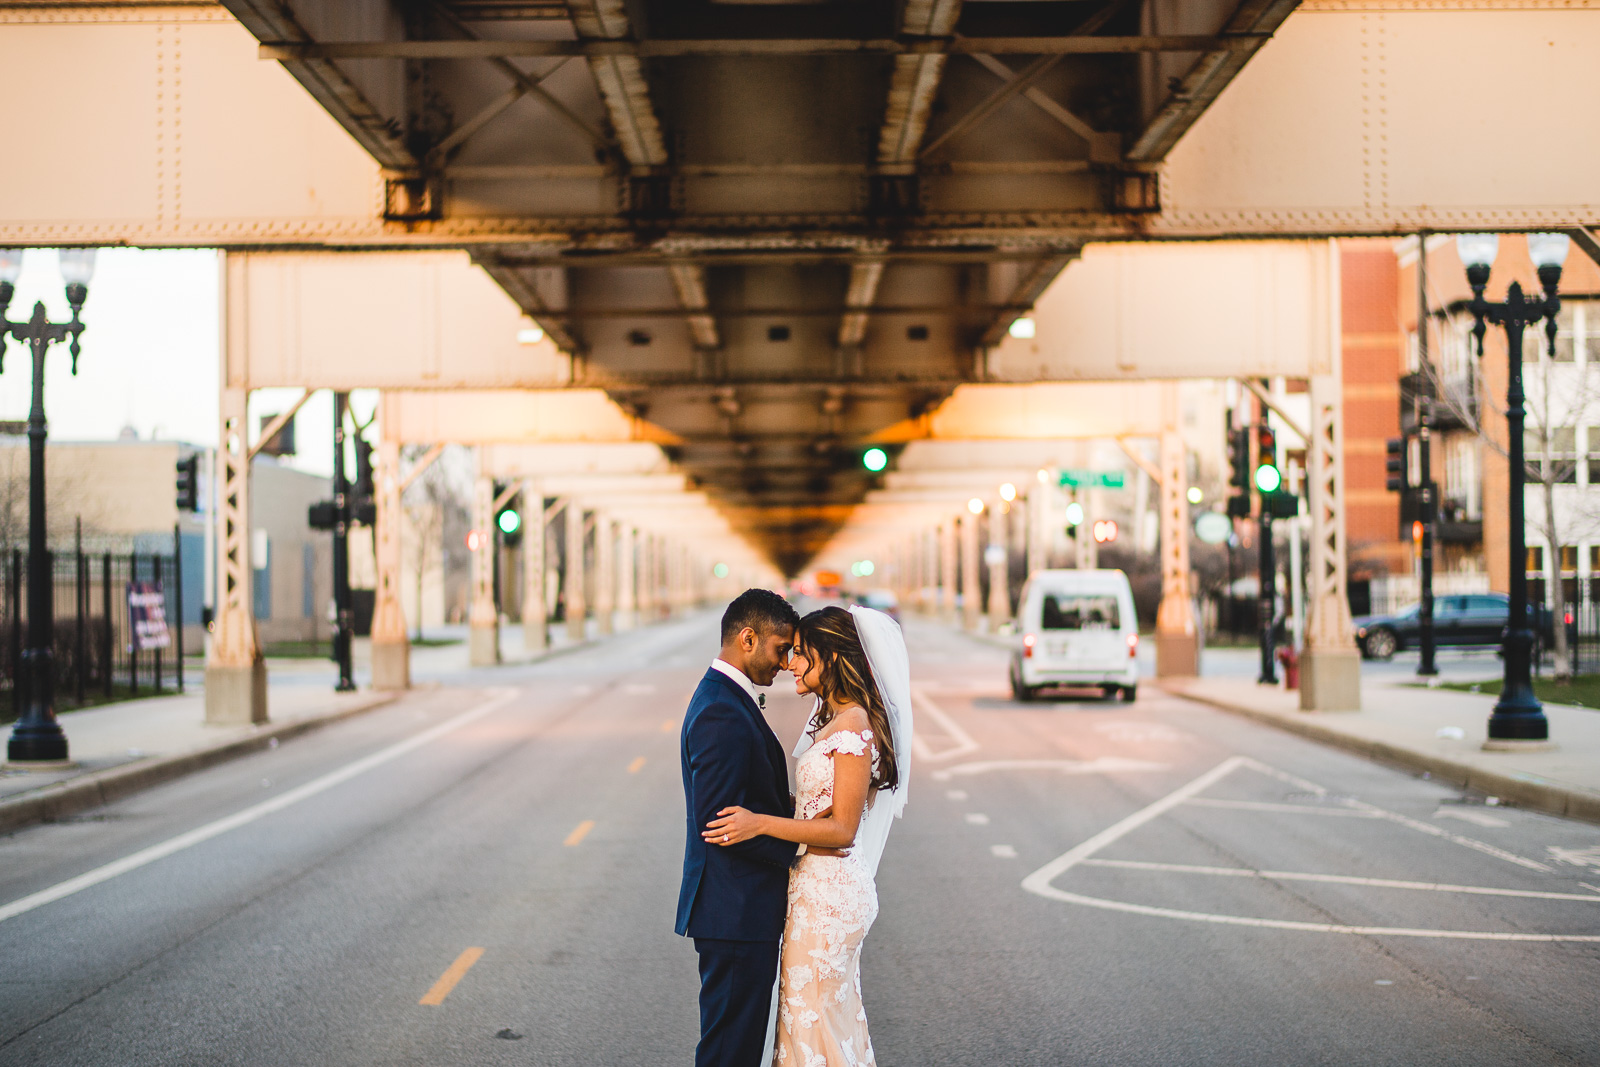 11 chicago wedding photographer best portraits during weddings review 1 - 2018 in Review // My Favorite Chicago Wedding Photography Portraits